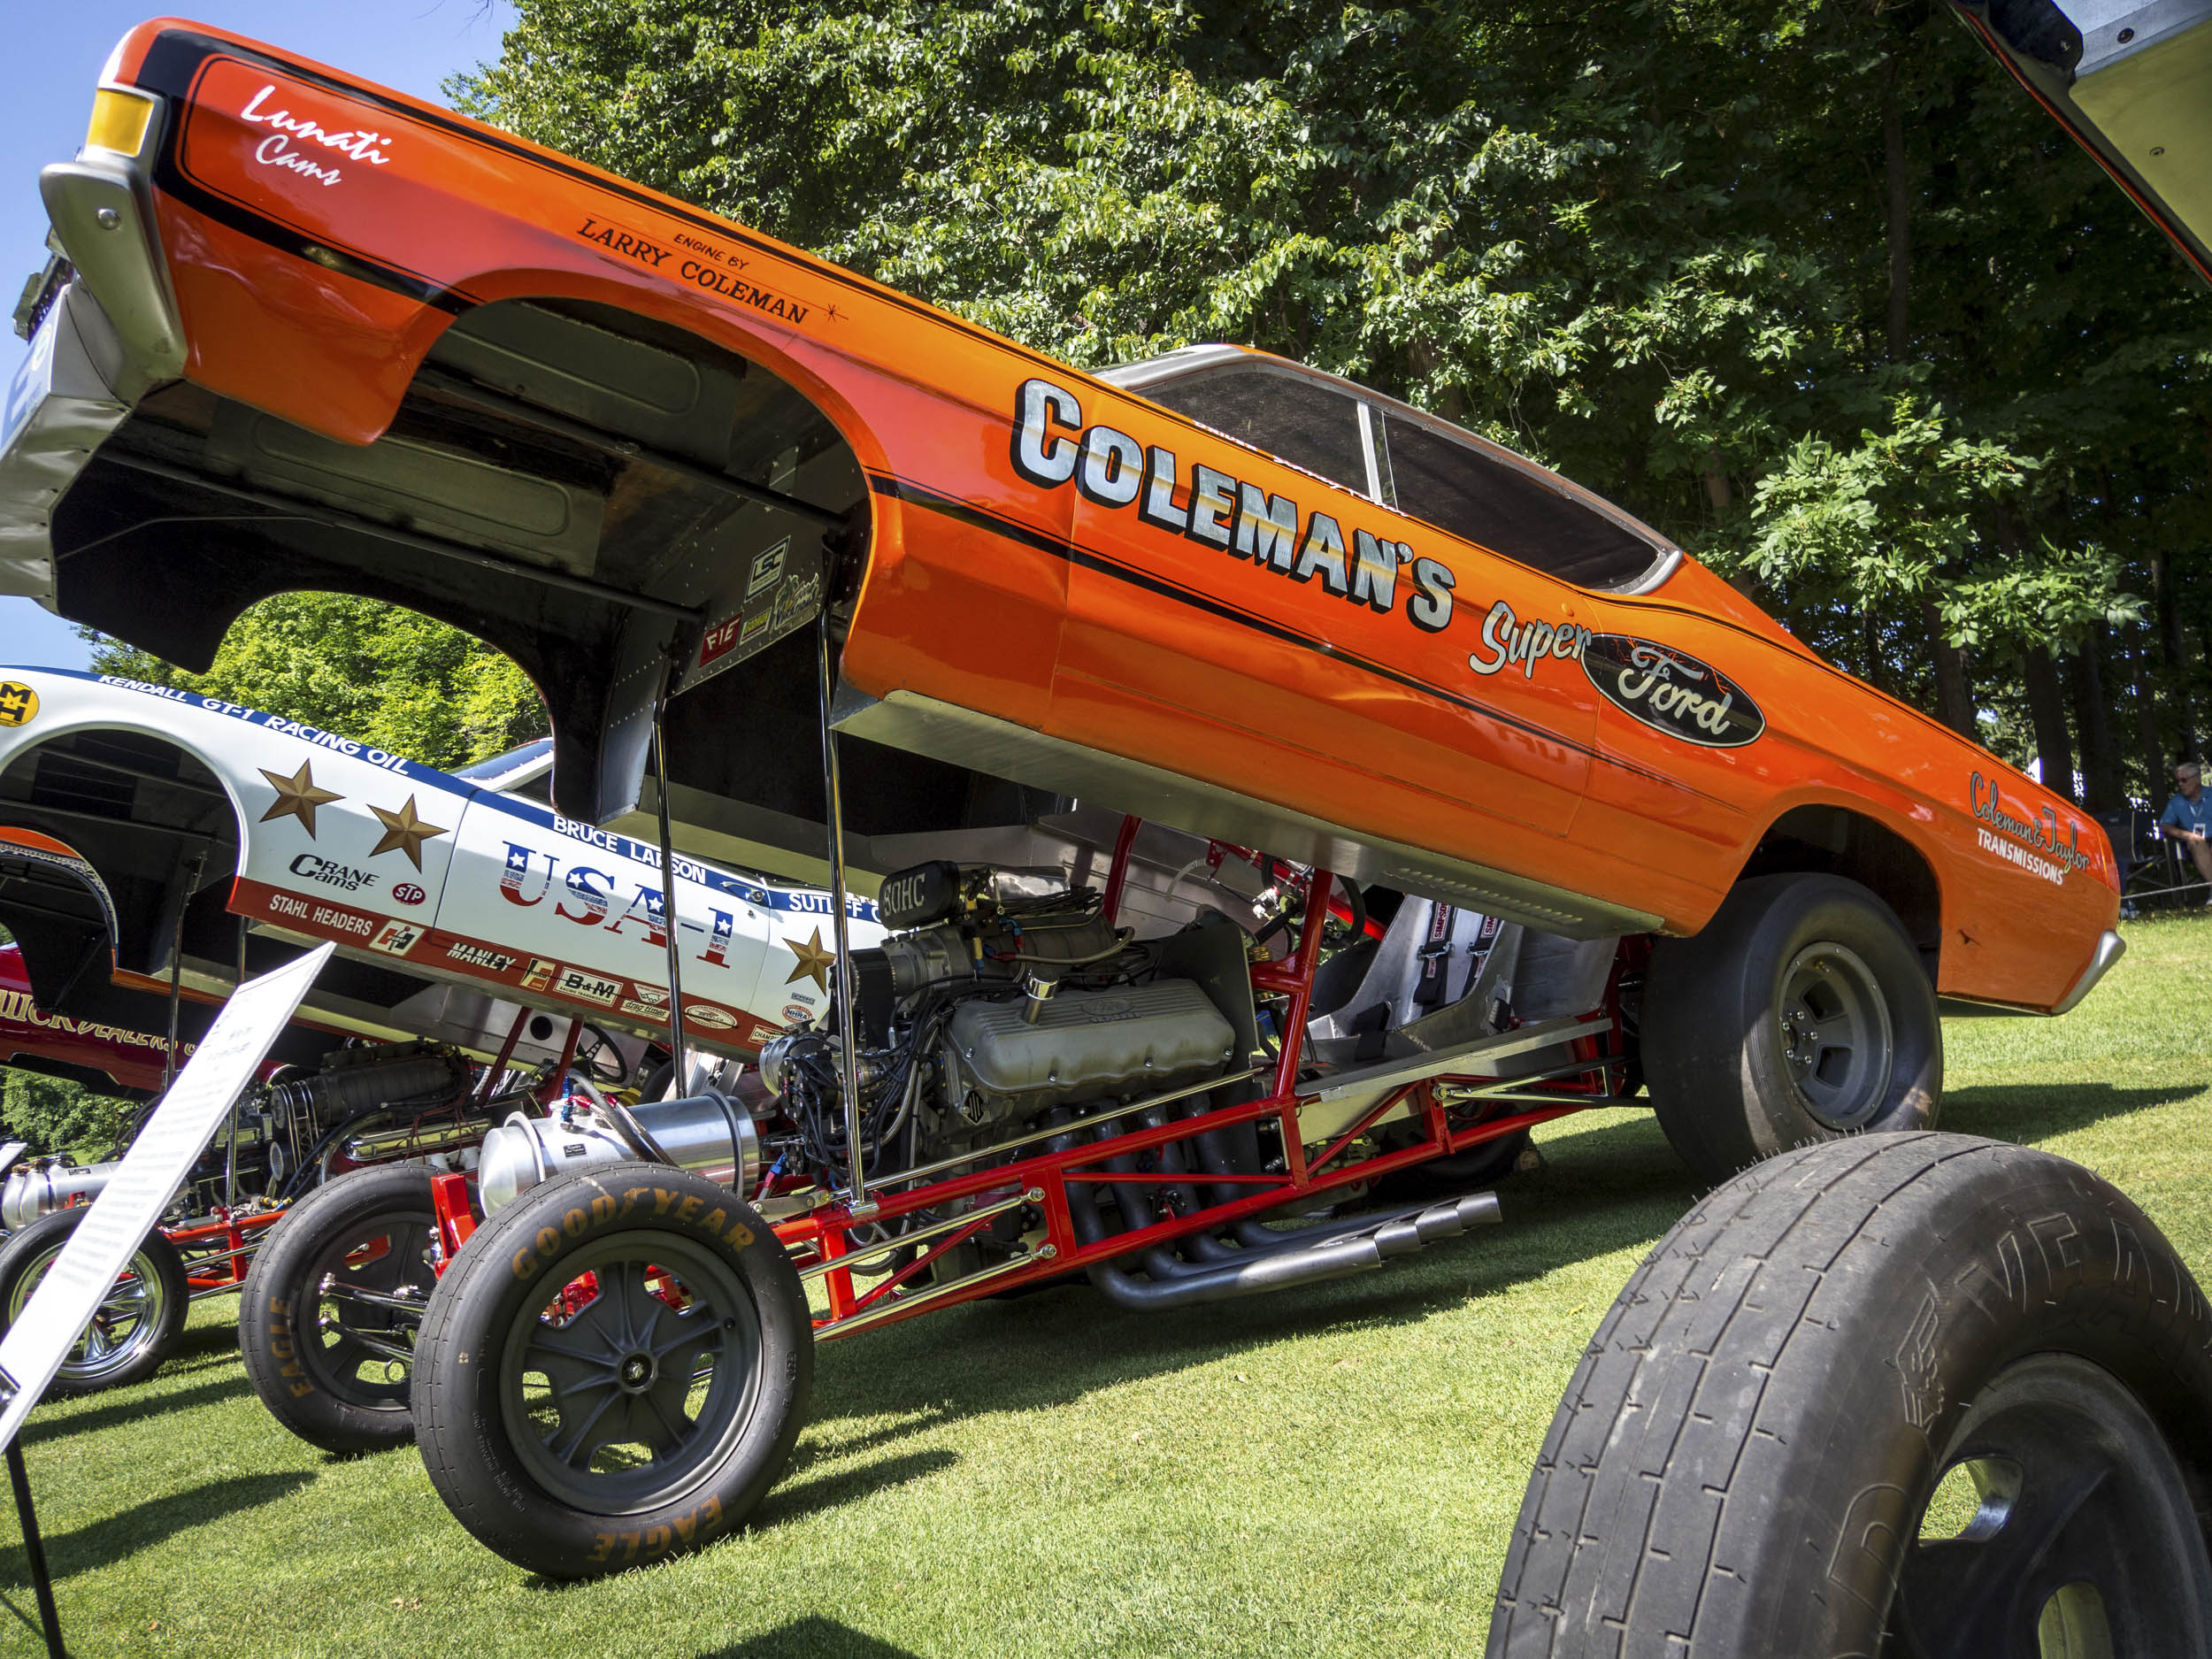 1968 Ford Torino Funny Car